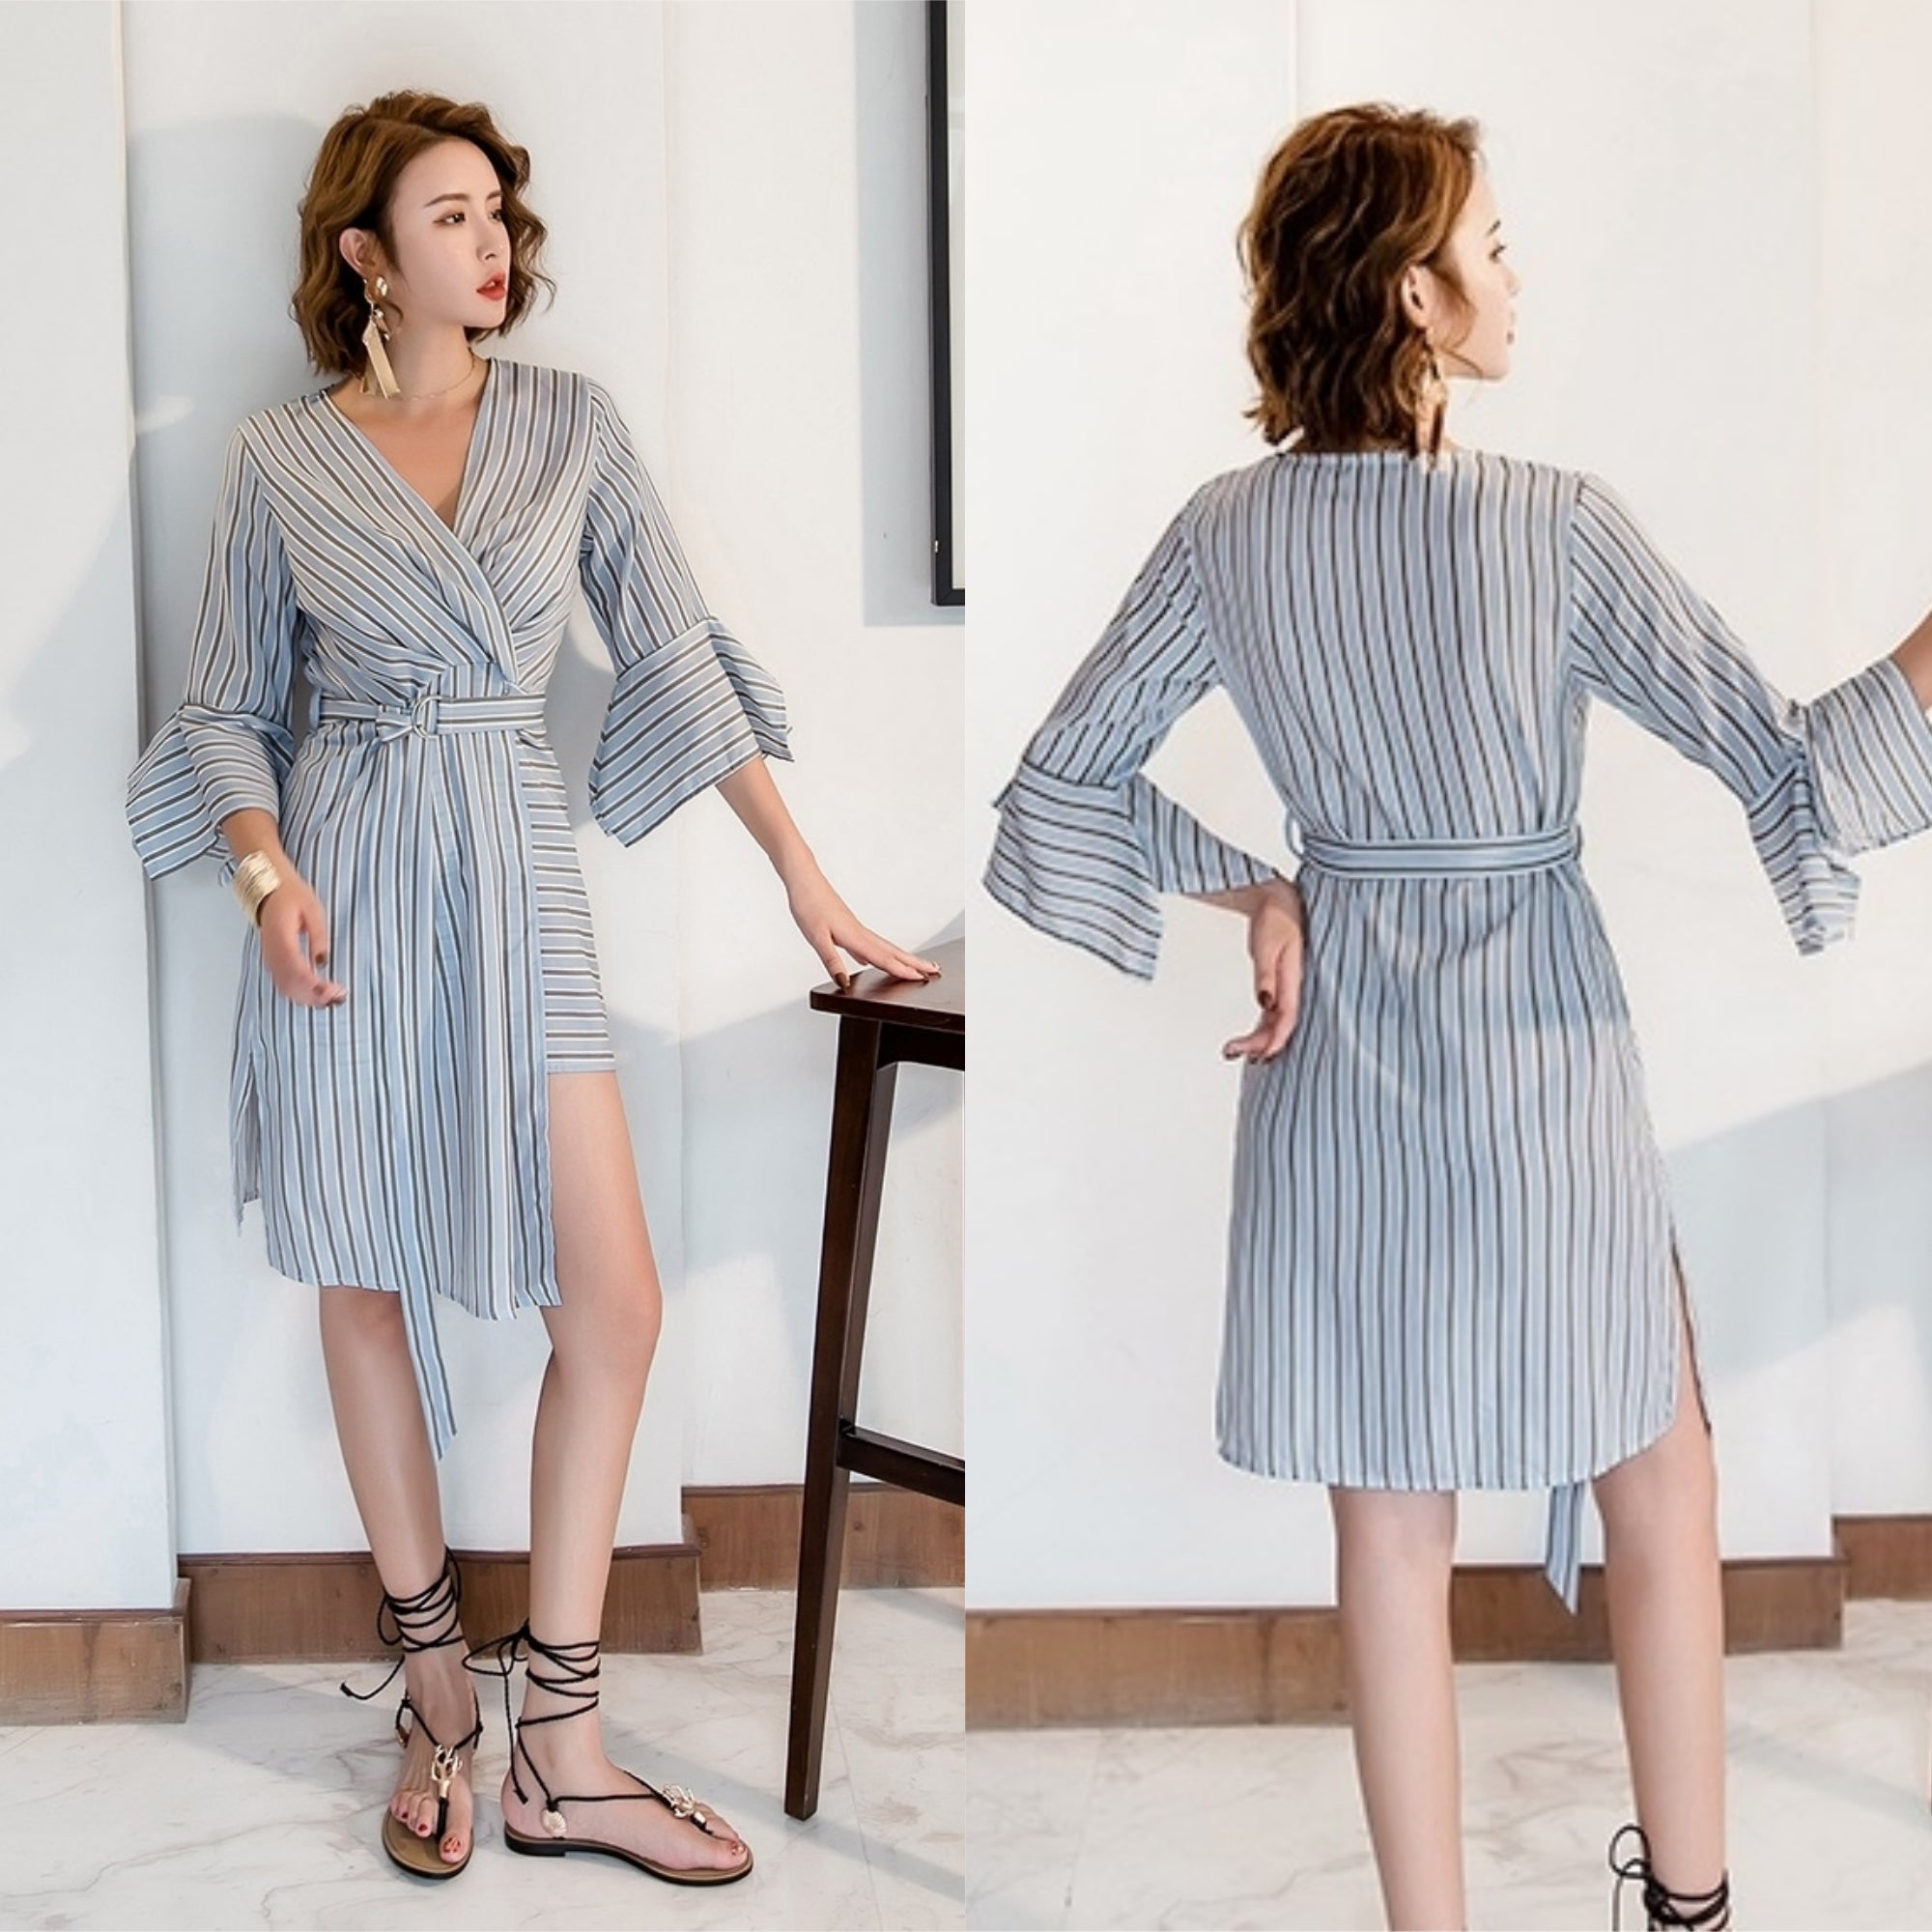 Valencia Asymmetric Shirt Dress